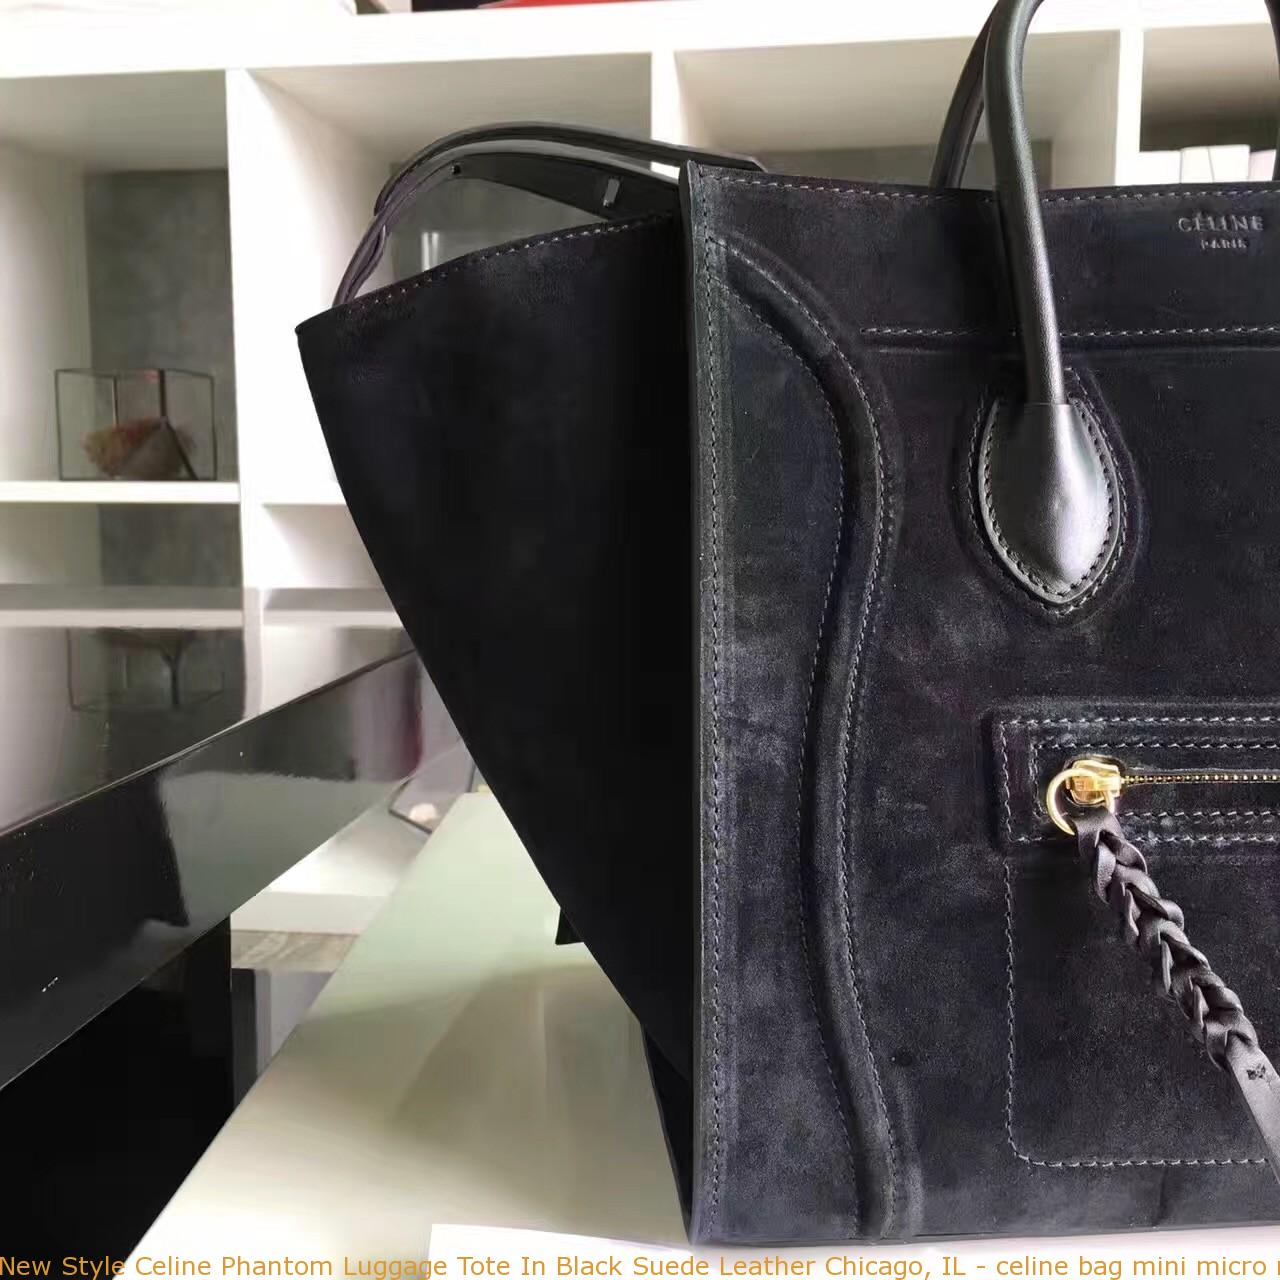 f4574097f3 New Style Celine Phantom Luggage Tote In Black Suede Leather Chicago ...